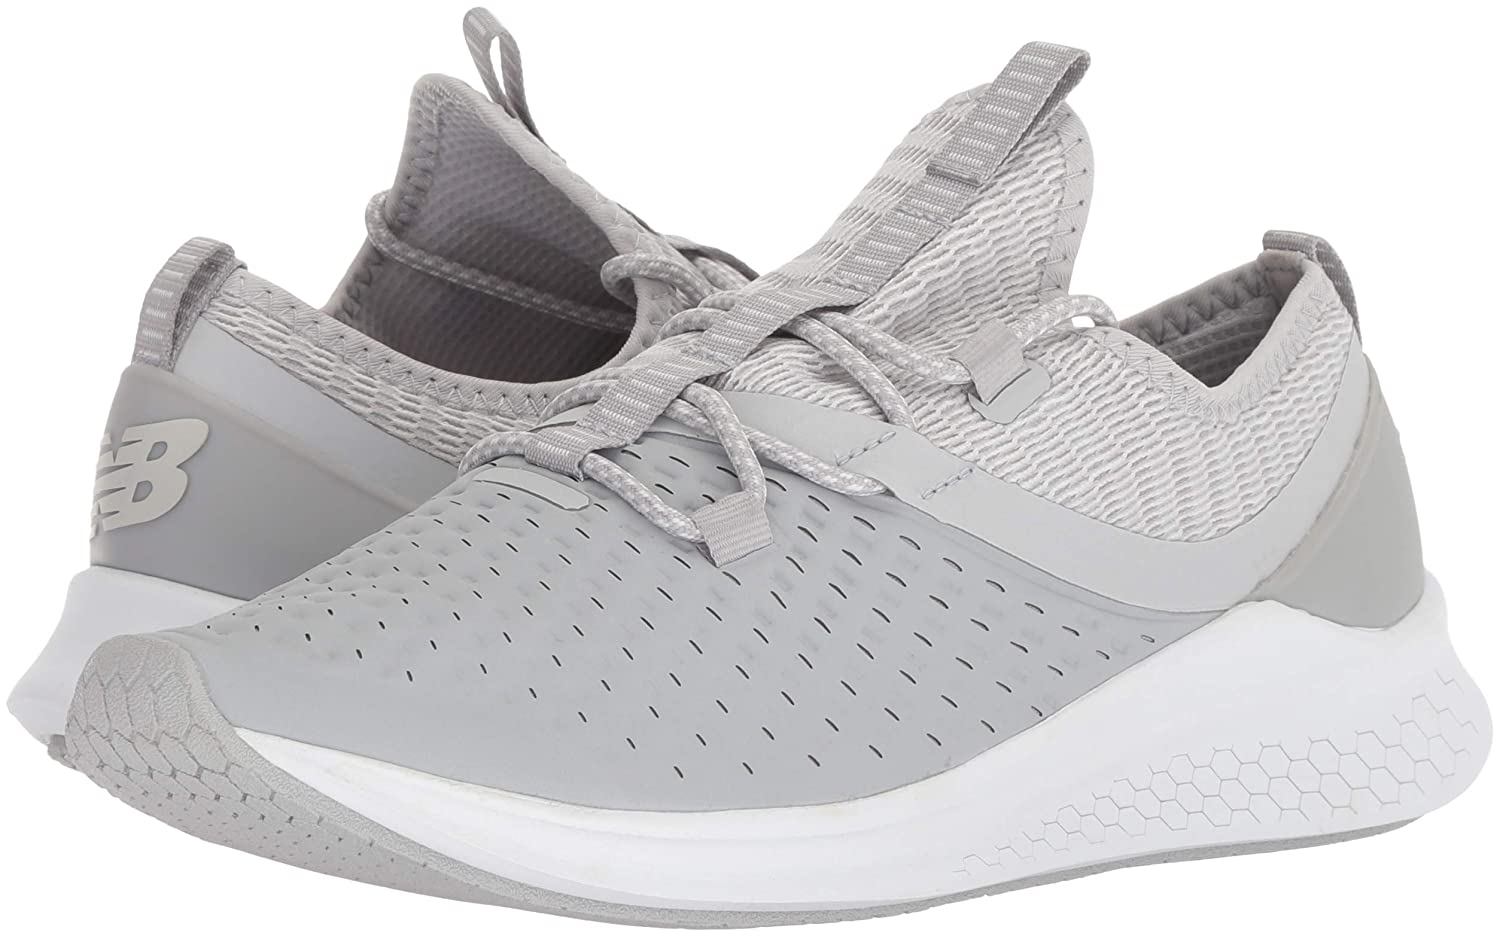 New Balance Women's Lazr V1 Fresh Foam Running Shoe Grey B075R3RJ63 6.5 M US|Light Grey Shoe 200f56